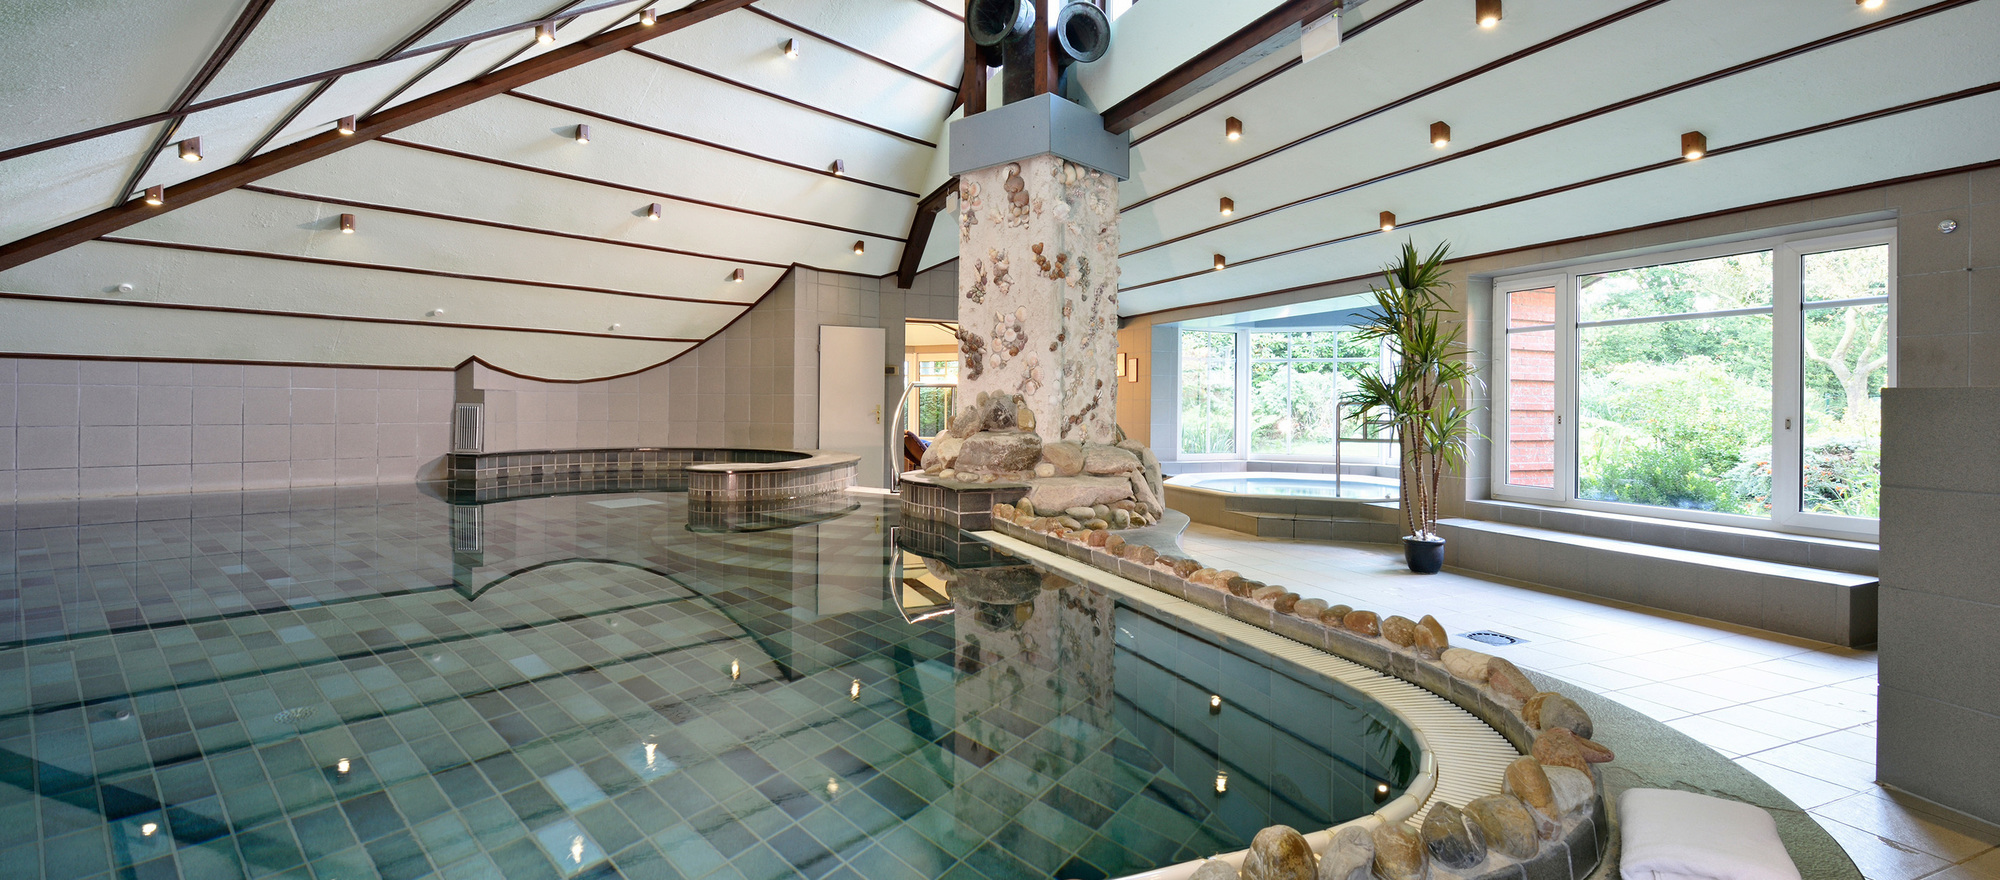 Spa swimming pool at the 4-star hotel Ringhotel Koehlers Forsthaus in Aurich